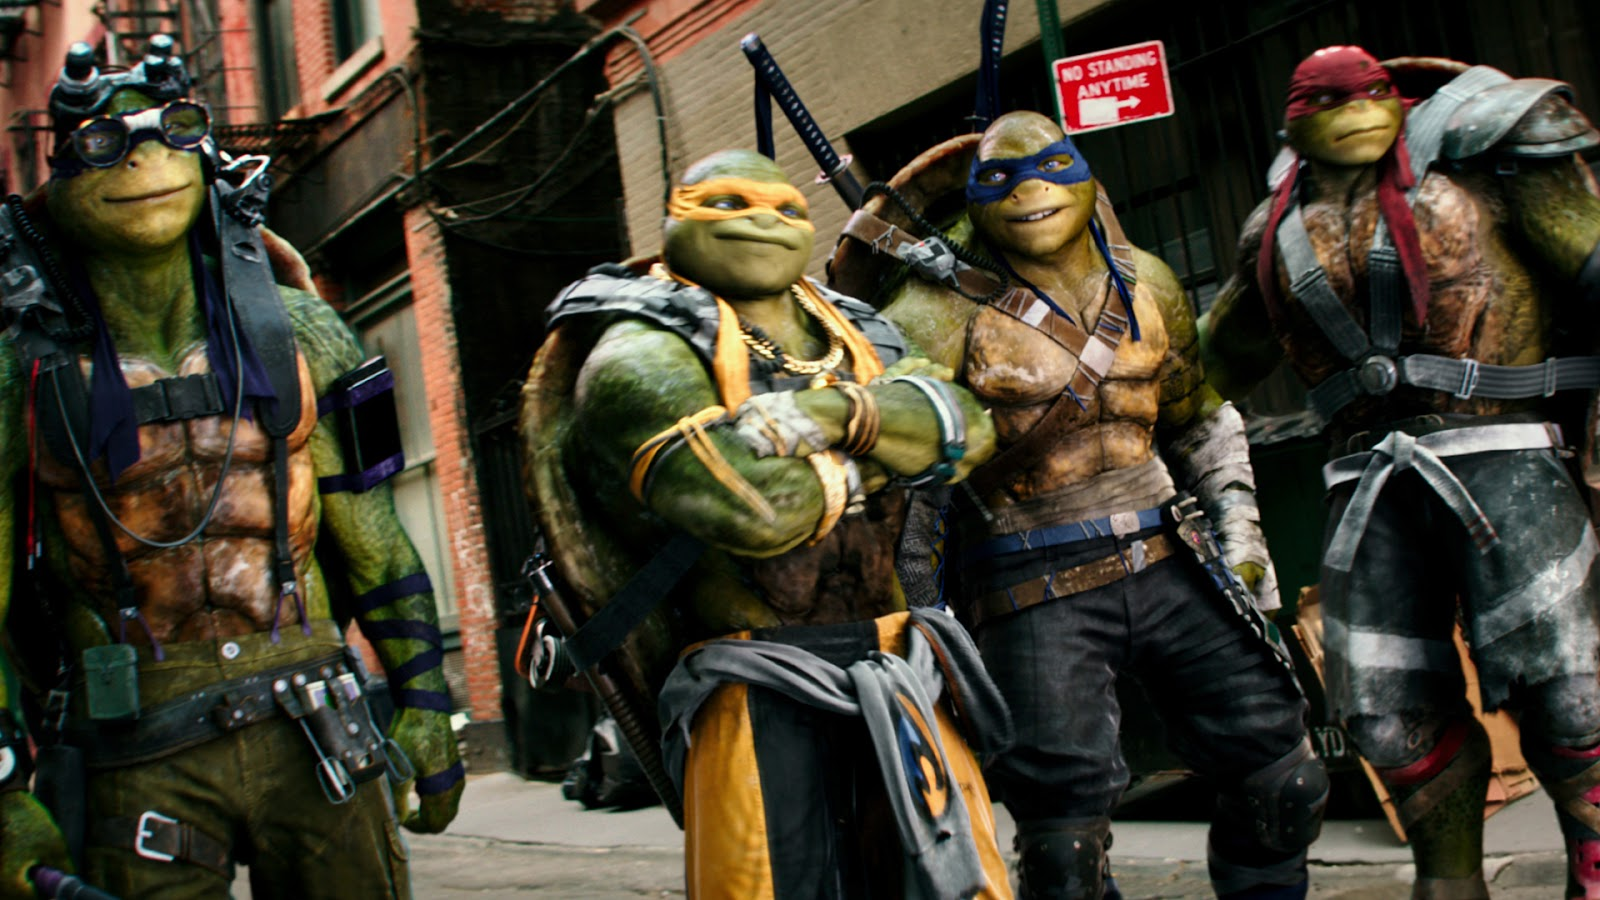 Nickalive Teenage Mutant Ninja Turtles Come Out Of The Shadows With Action Packed Movie Toy Line From Playmates Toys